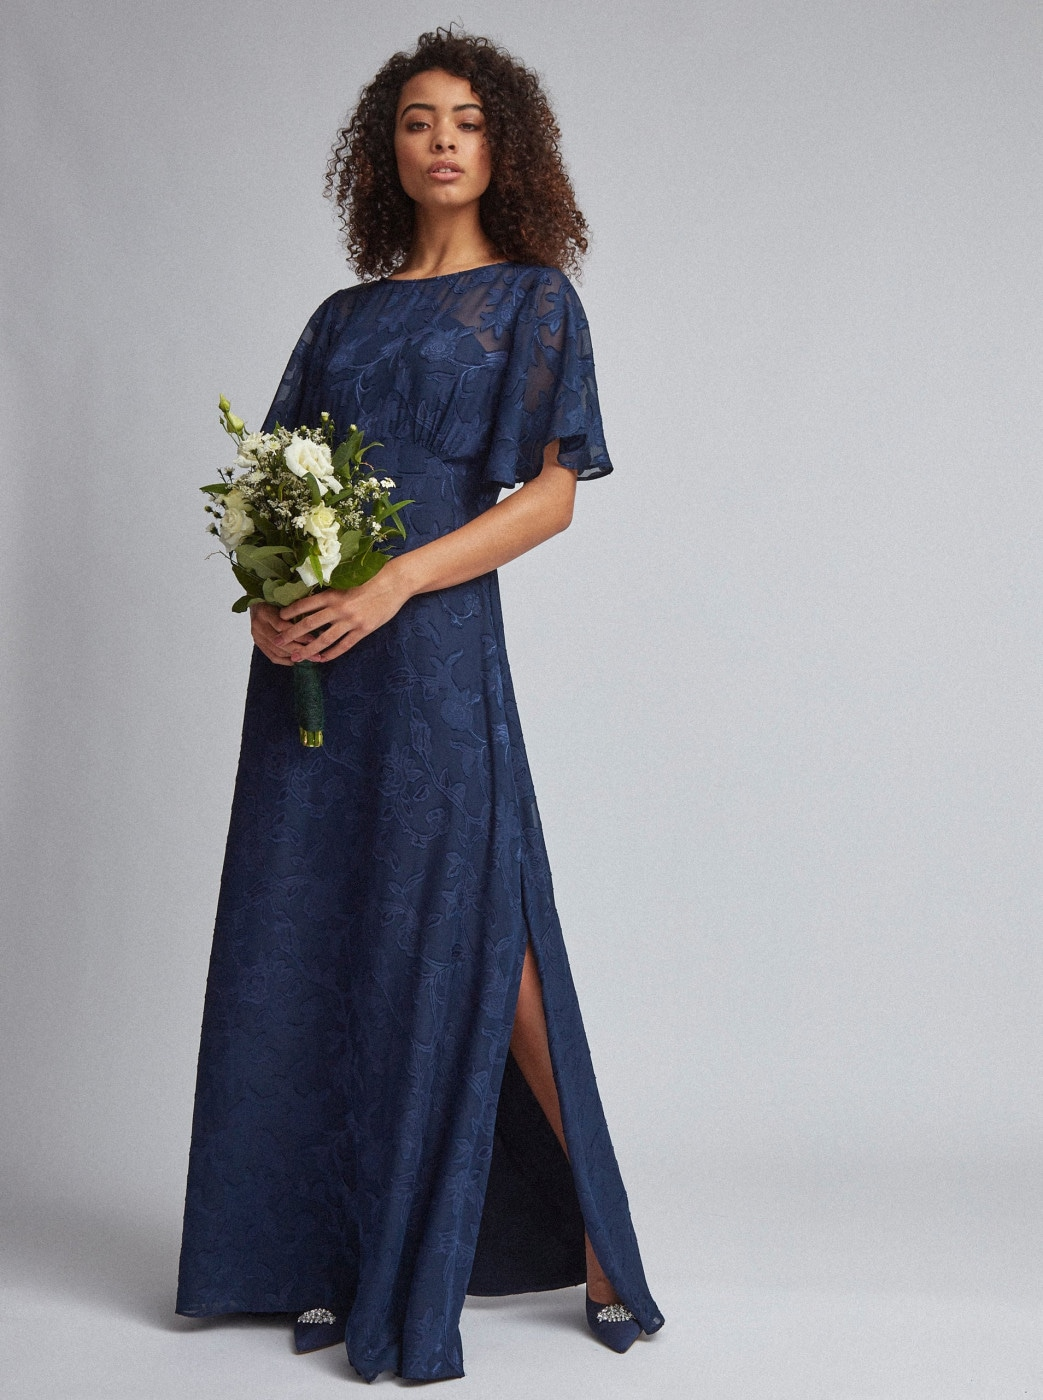 Dorothy Perkins Dark Blue Floral Maxi dress